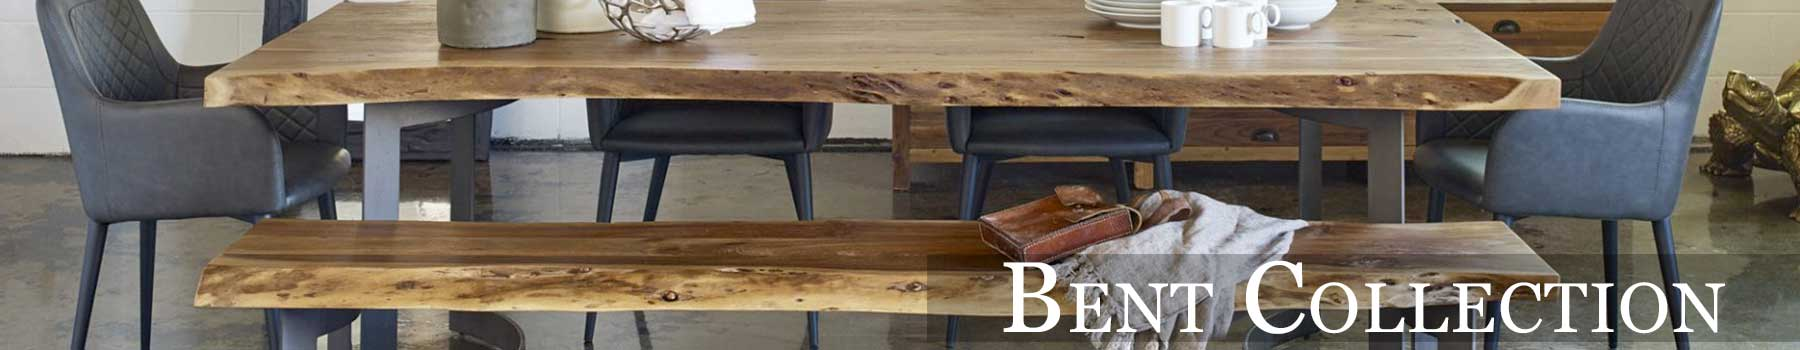 Pictured is our Bent Dining Table and Bench representing the Bent Furniture Collection